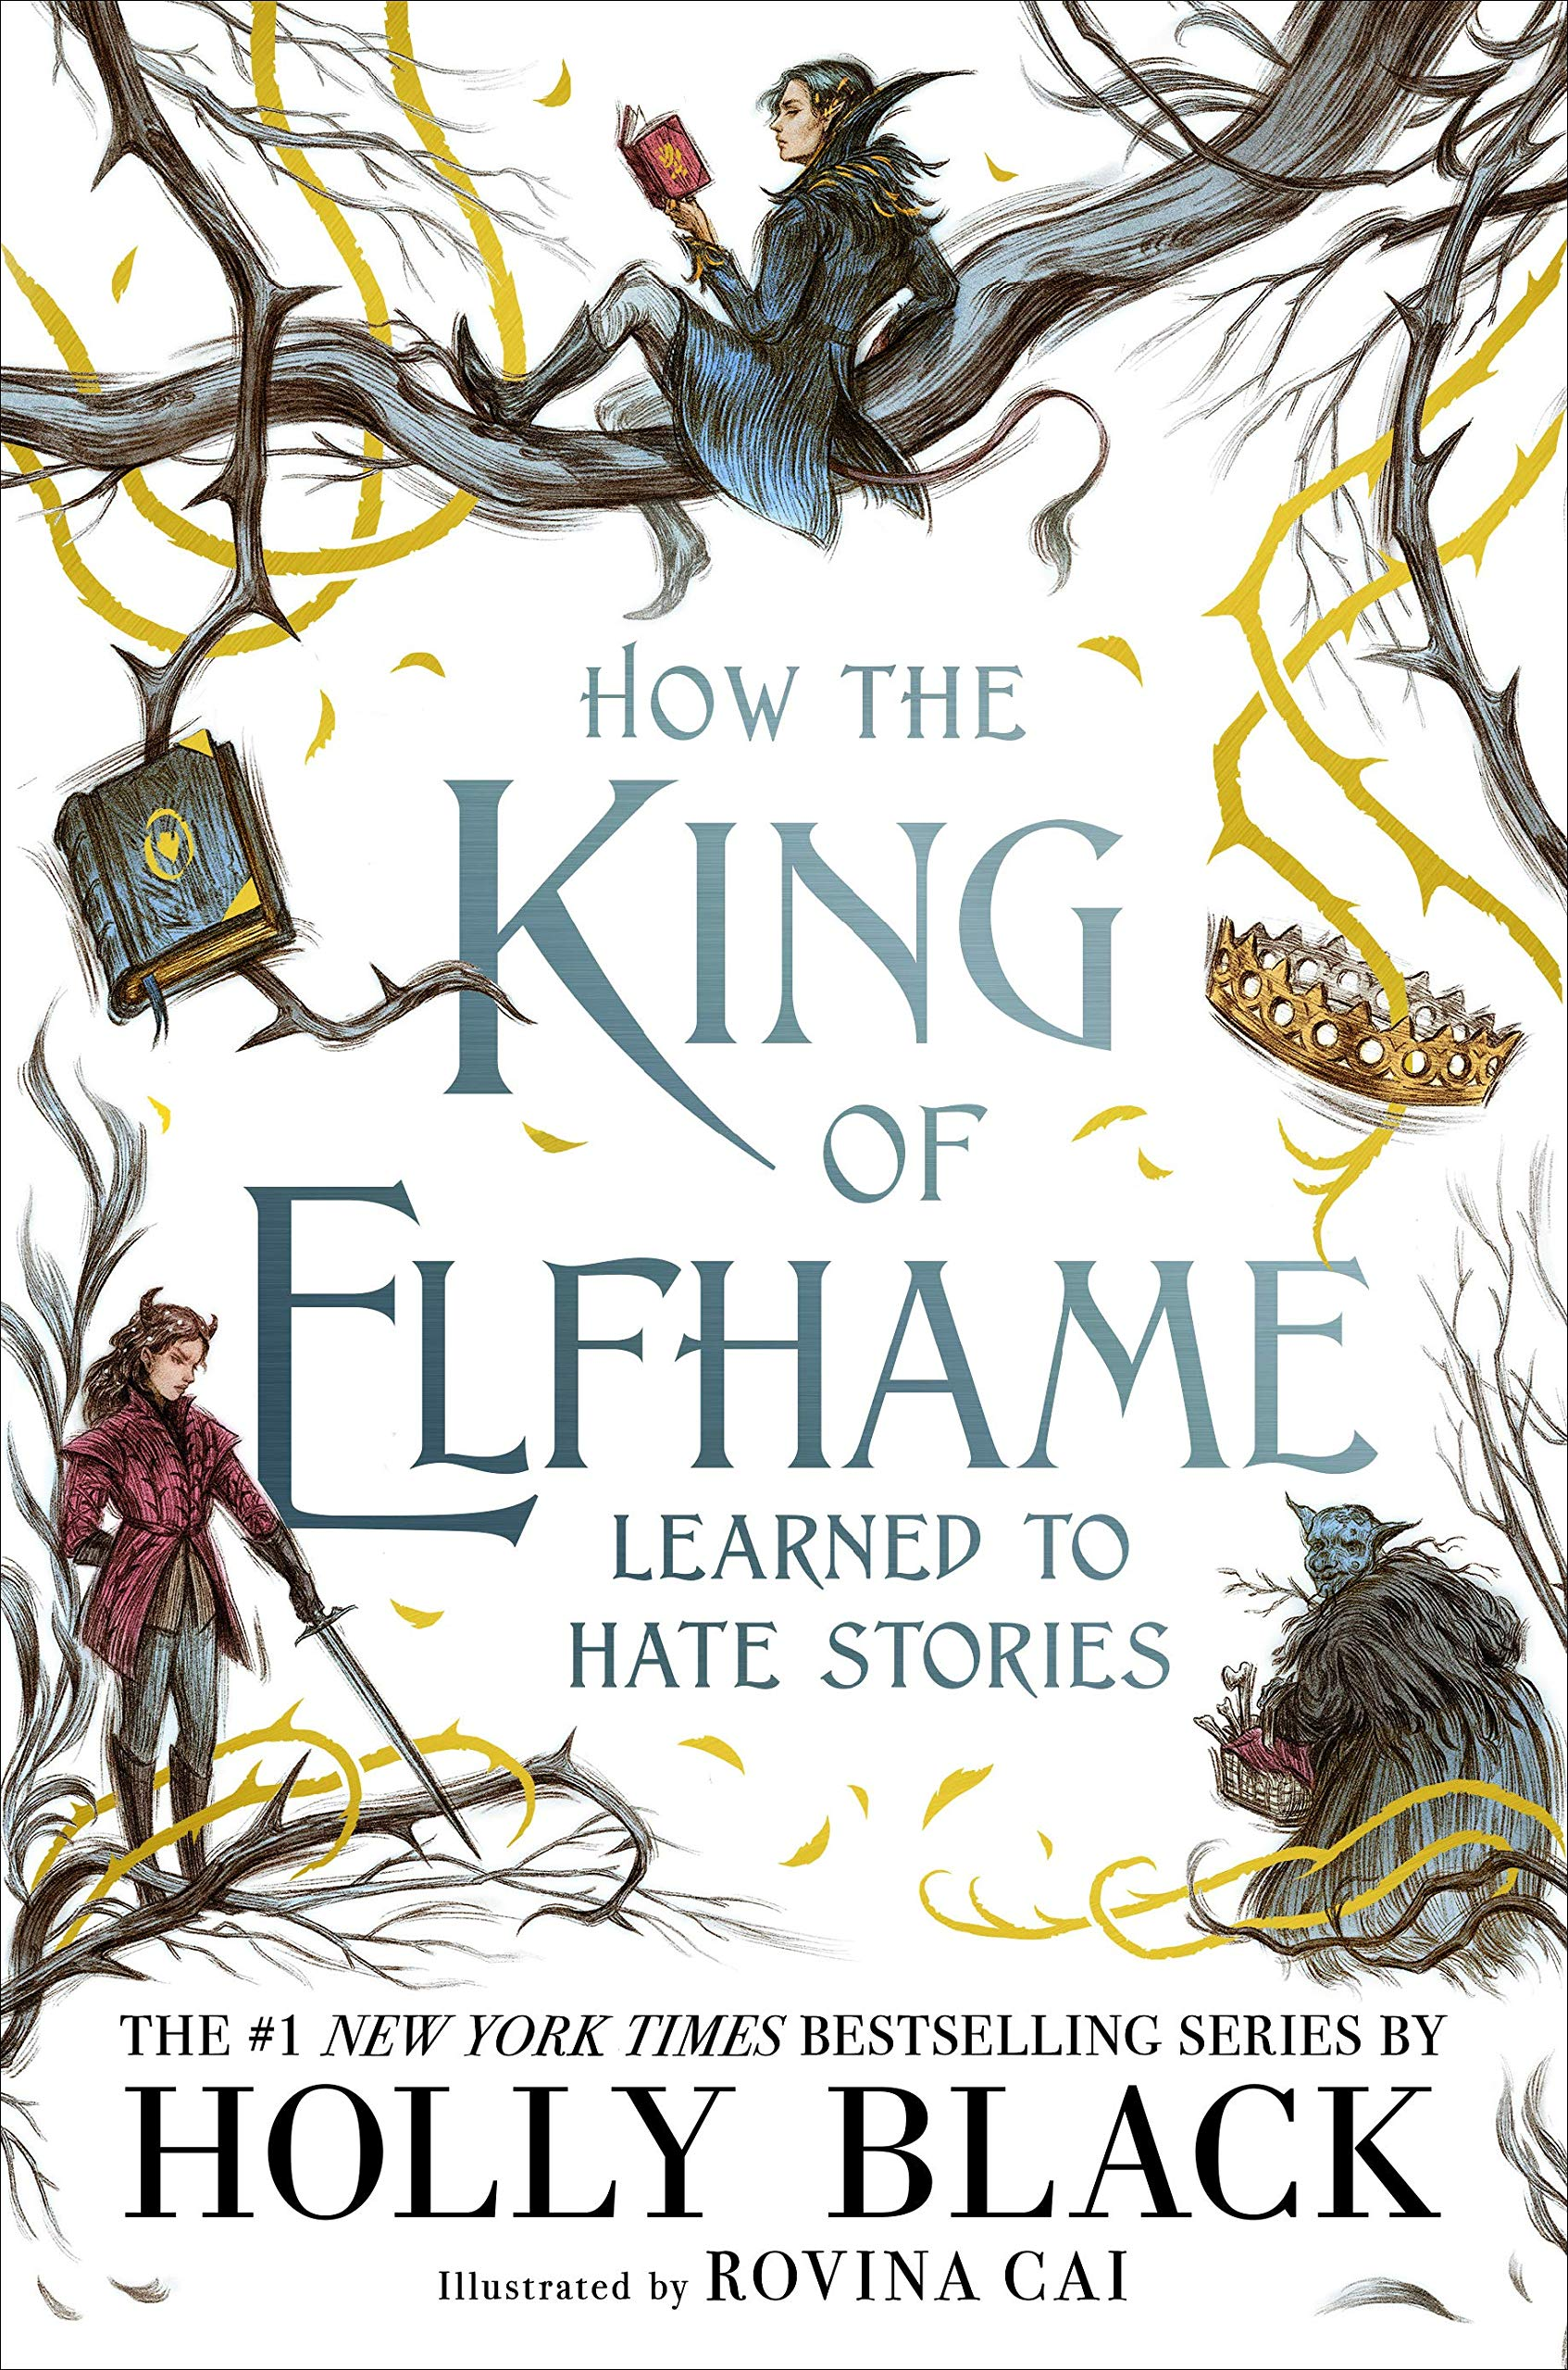 How the King of Elfhame Learned to Hate Stories by Holly Black book cover